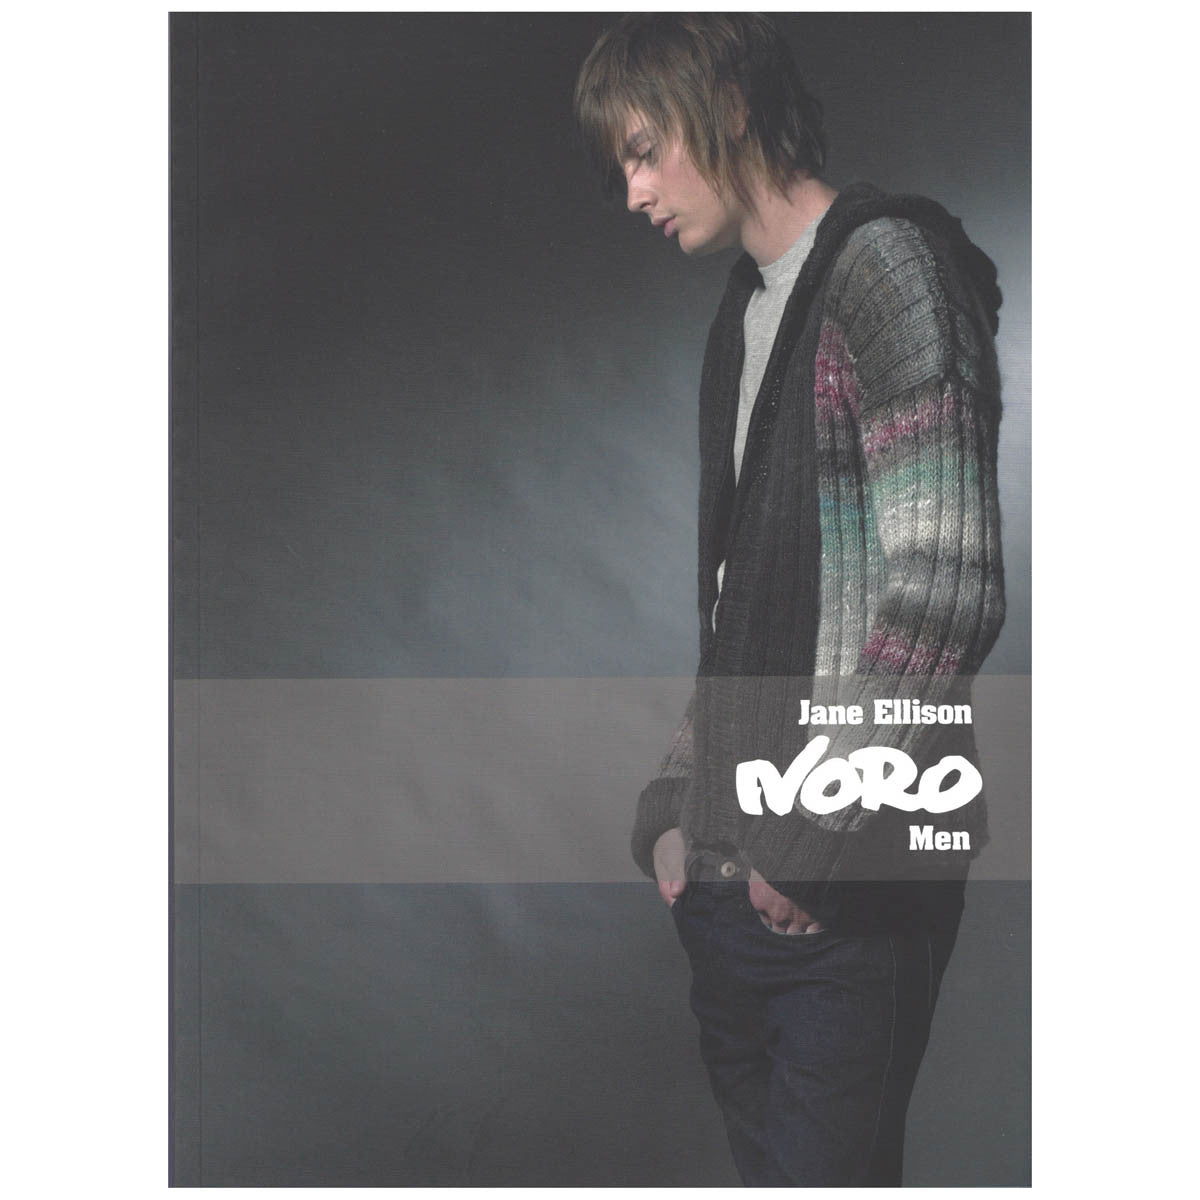 NORO MEN - 17 knitting designs for men - by Jane Ellison